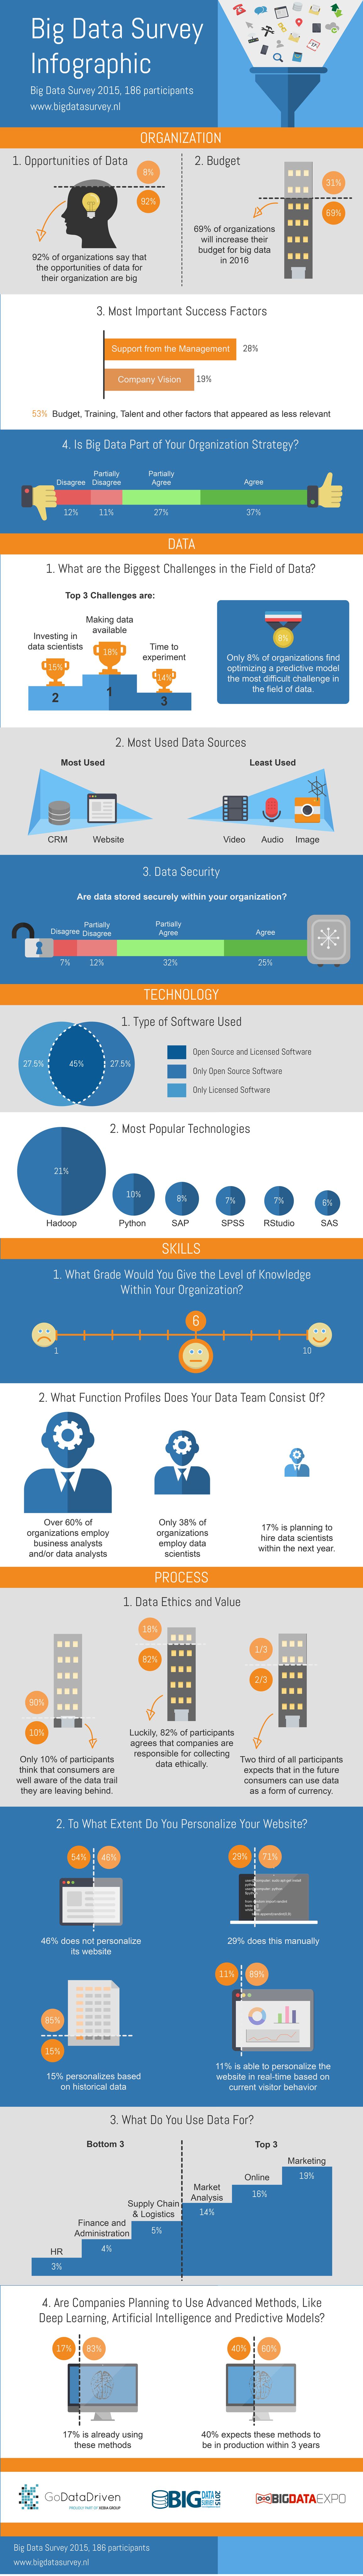 big-data-infographic-small (1)